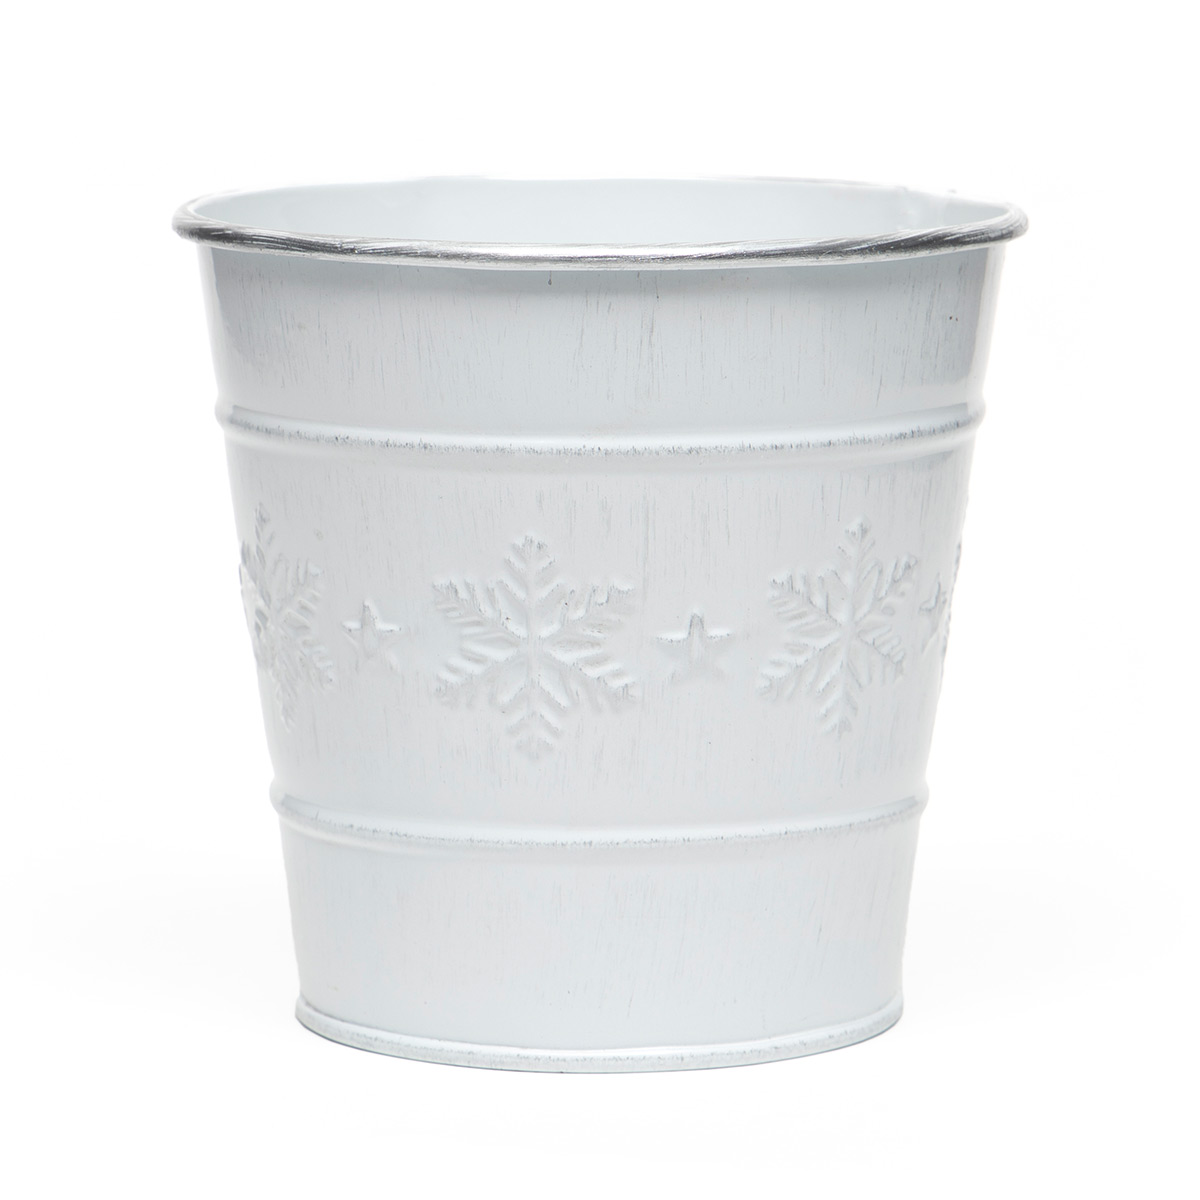 "SNOWFLAKE METAL BUCKET WHITEWASH/SILVER SMALL 4.5""X4"""